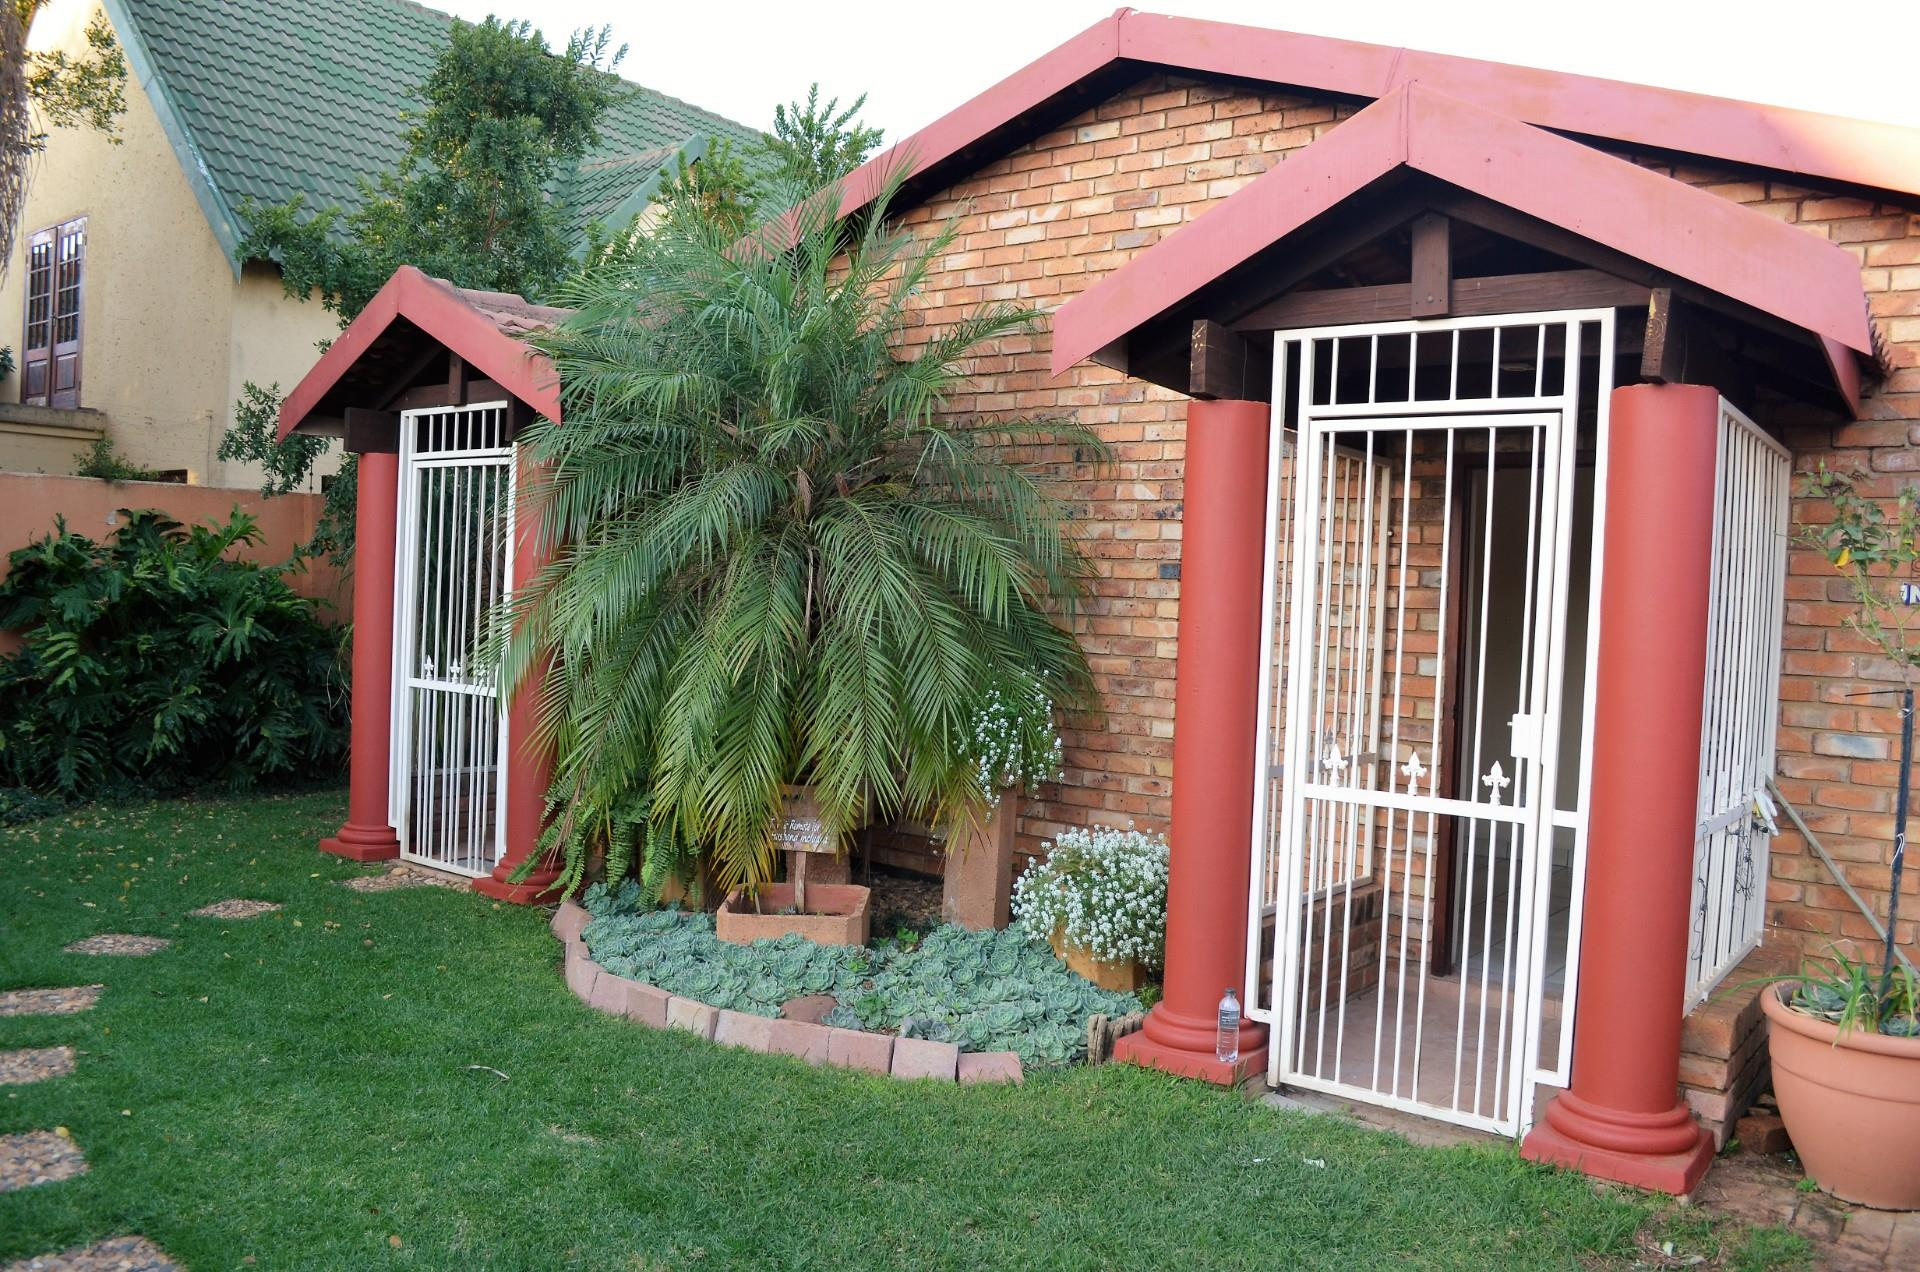 Property for sale in Pretoria | RE/MAX™ of Southern Africa